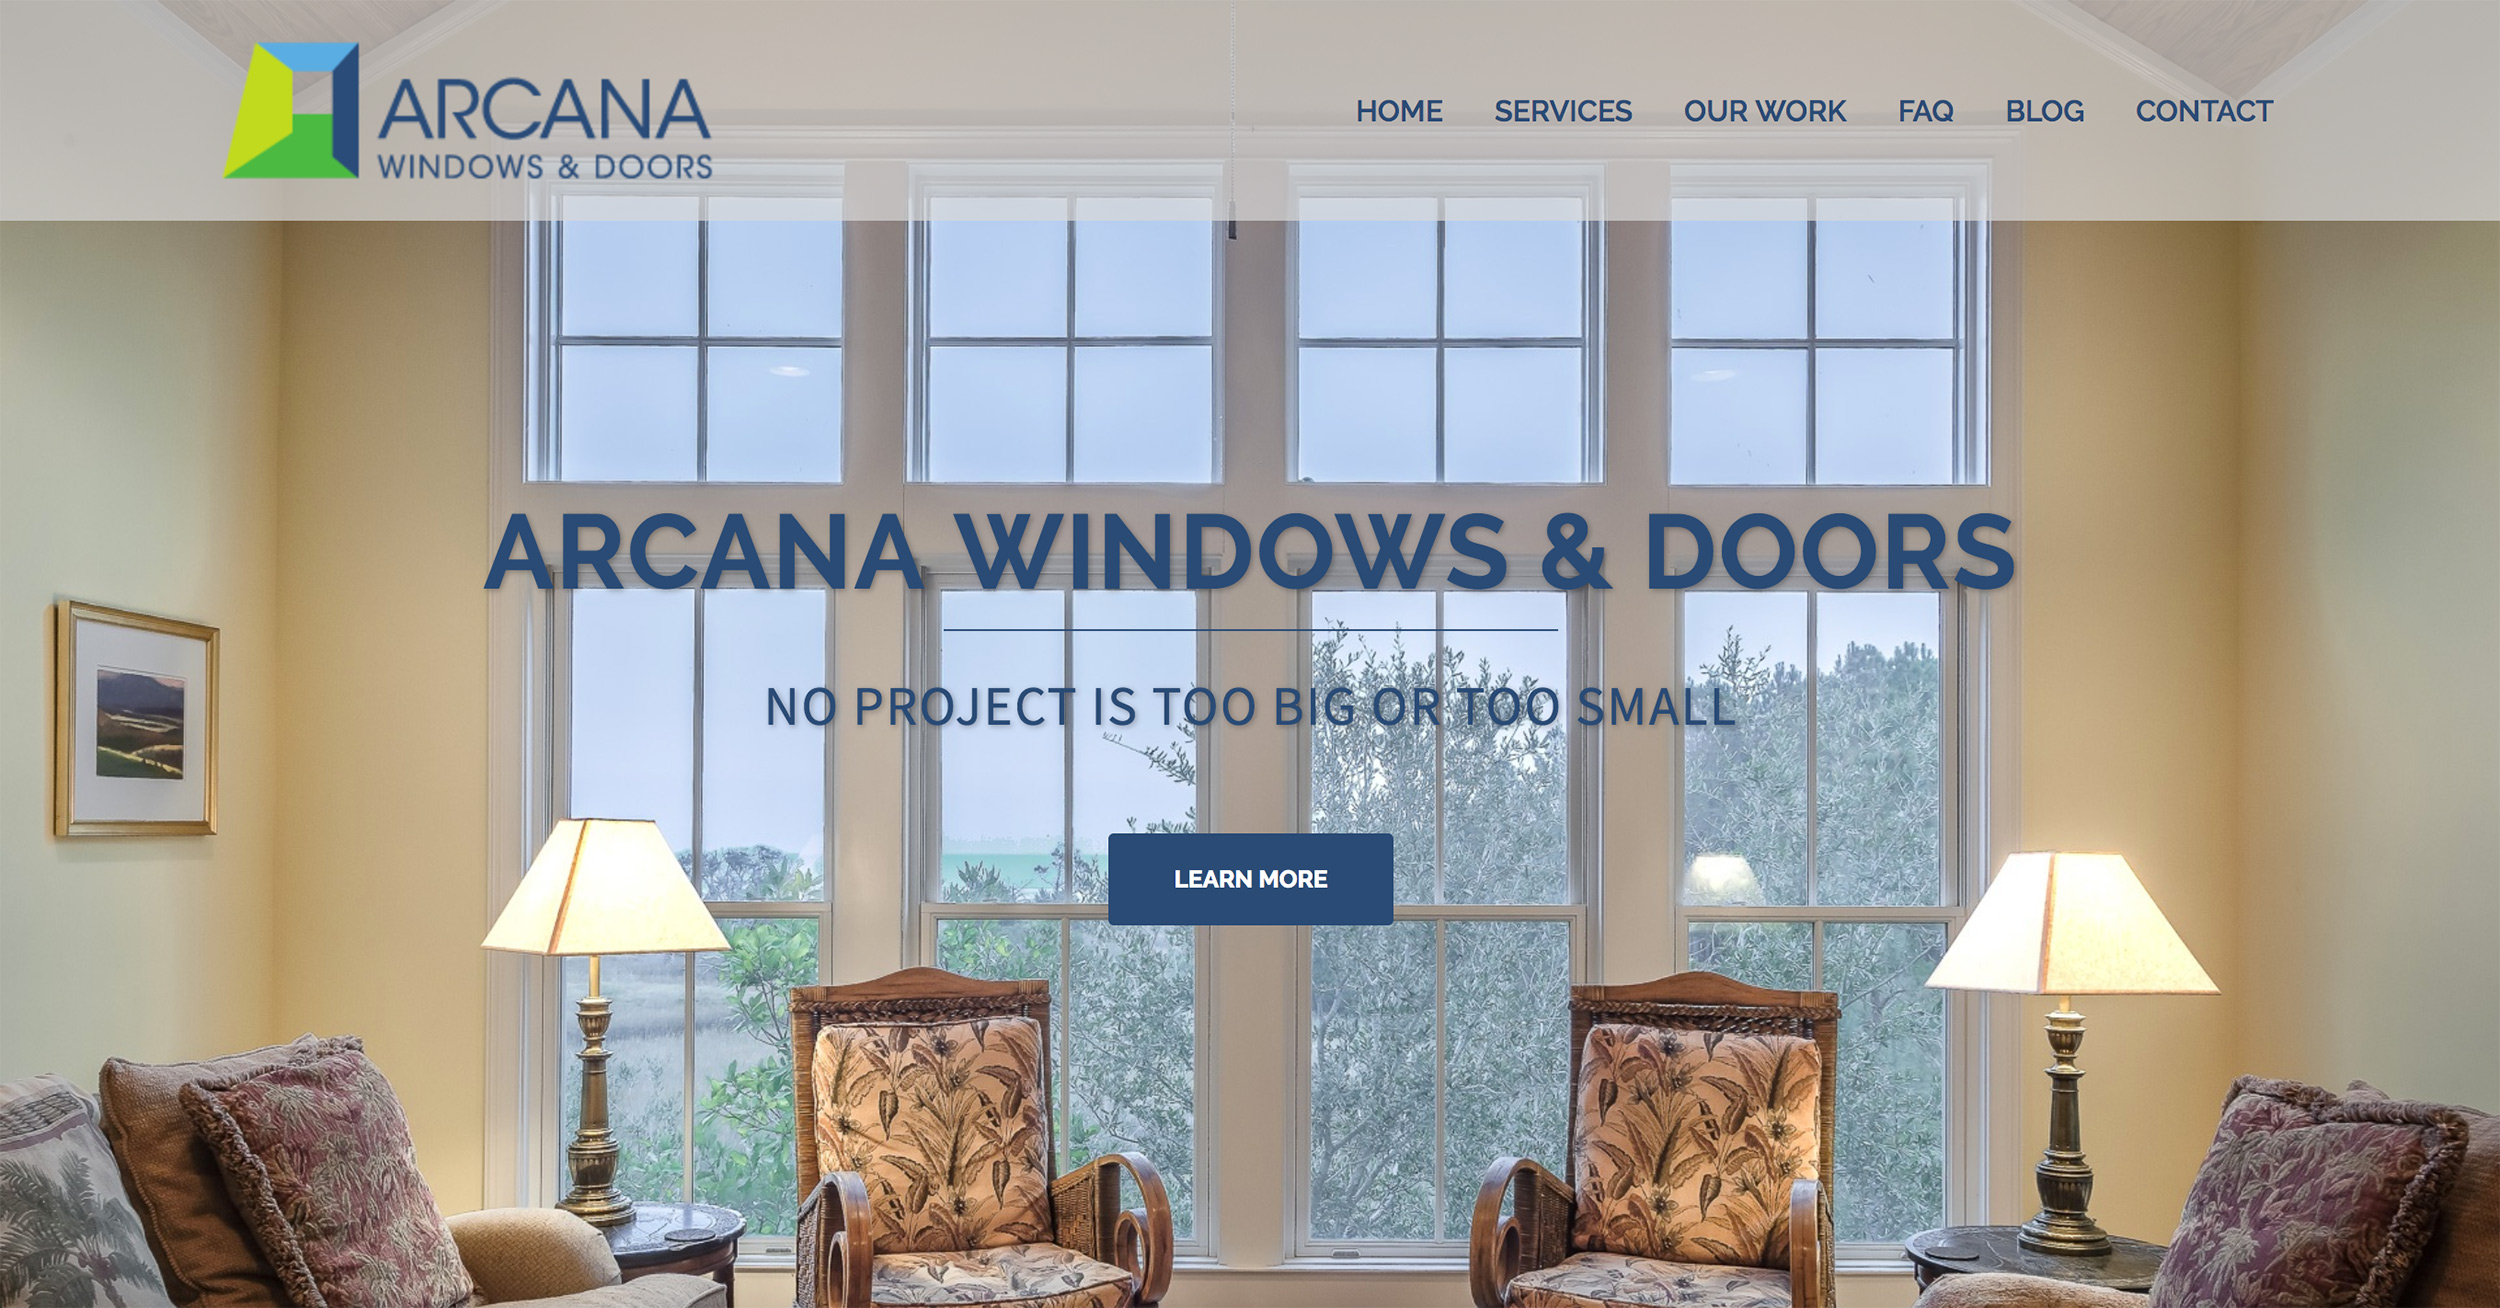 New Arcana Windows website homepage